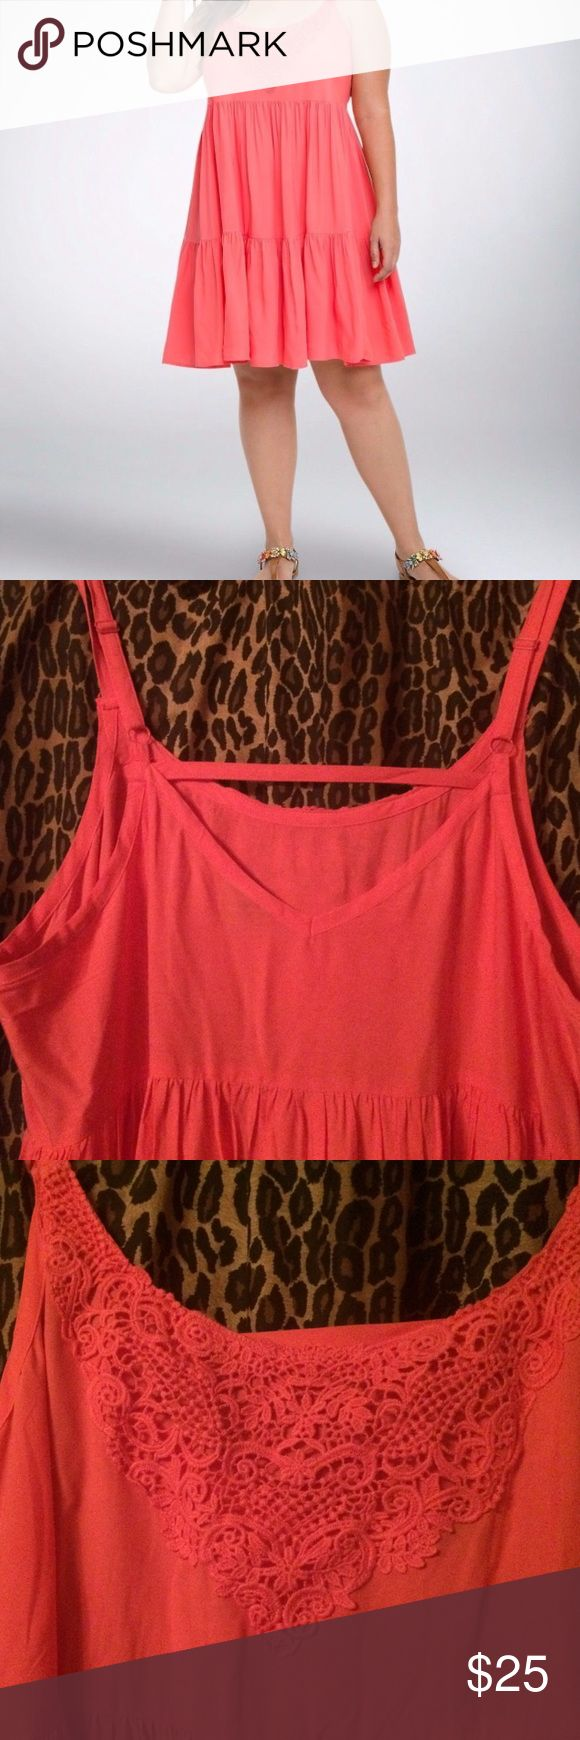 BNWT NW Coral Torrid Sundress Size 2 Brand new, never worn, tags attached Torrid sundress, size 2 (2x). Beautiful coral color. So sad it is too tight on my chest :( Paid 59, selling for 25. torrid Dresses Midi